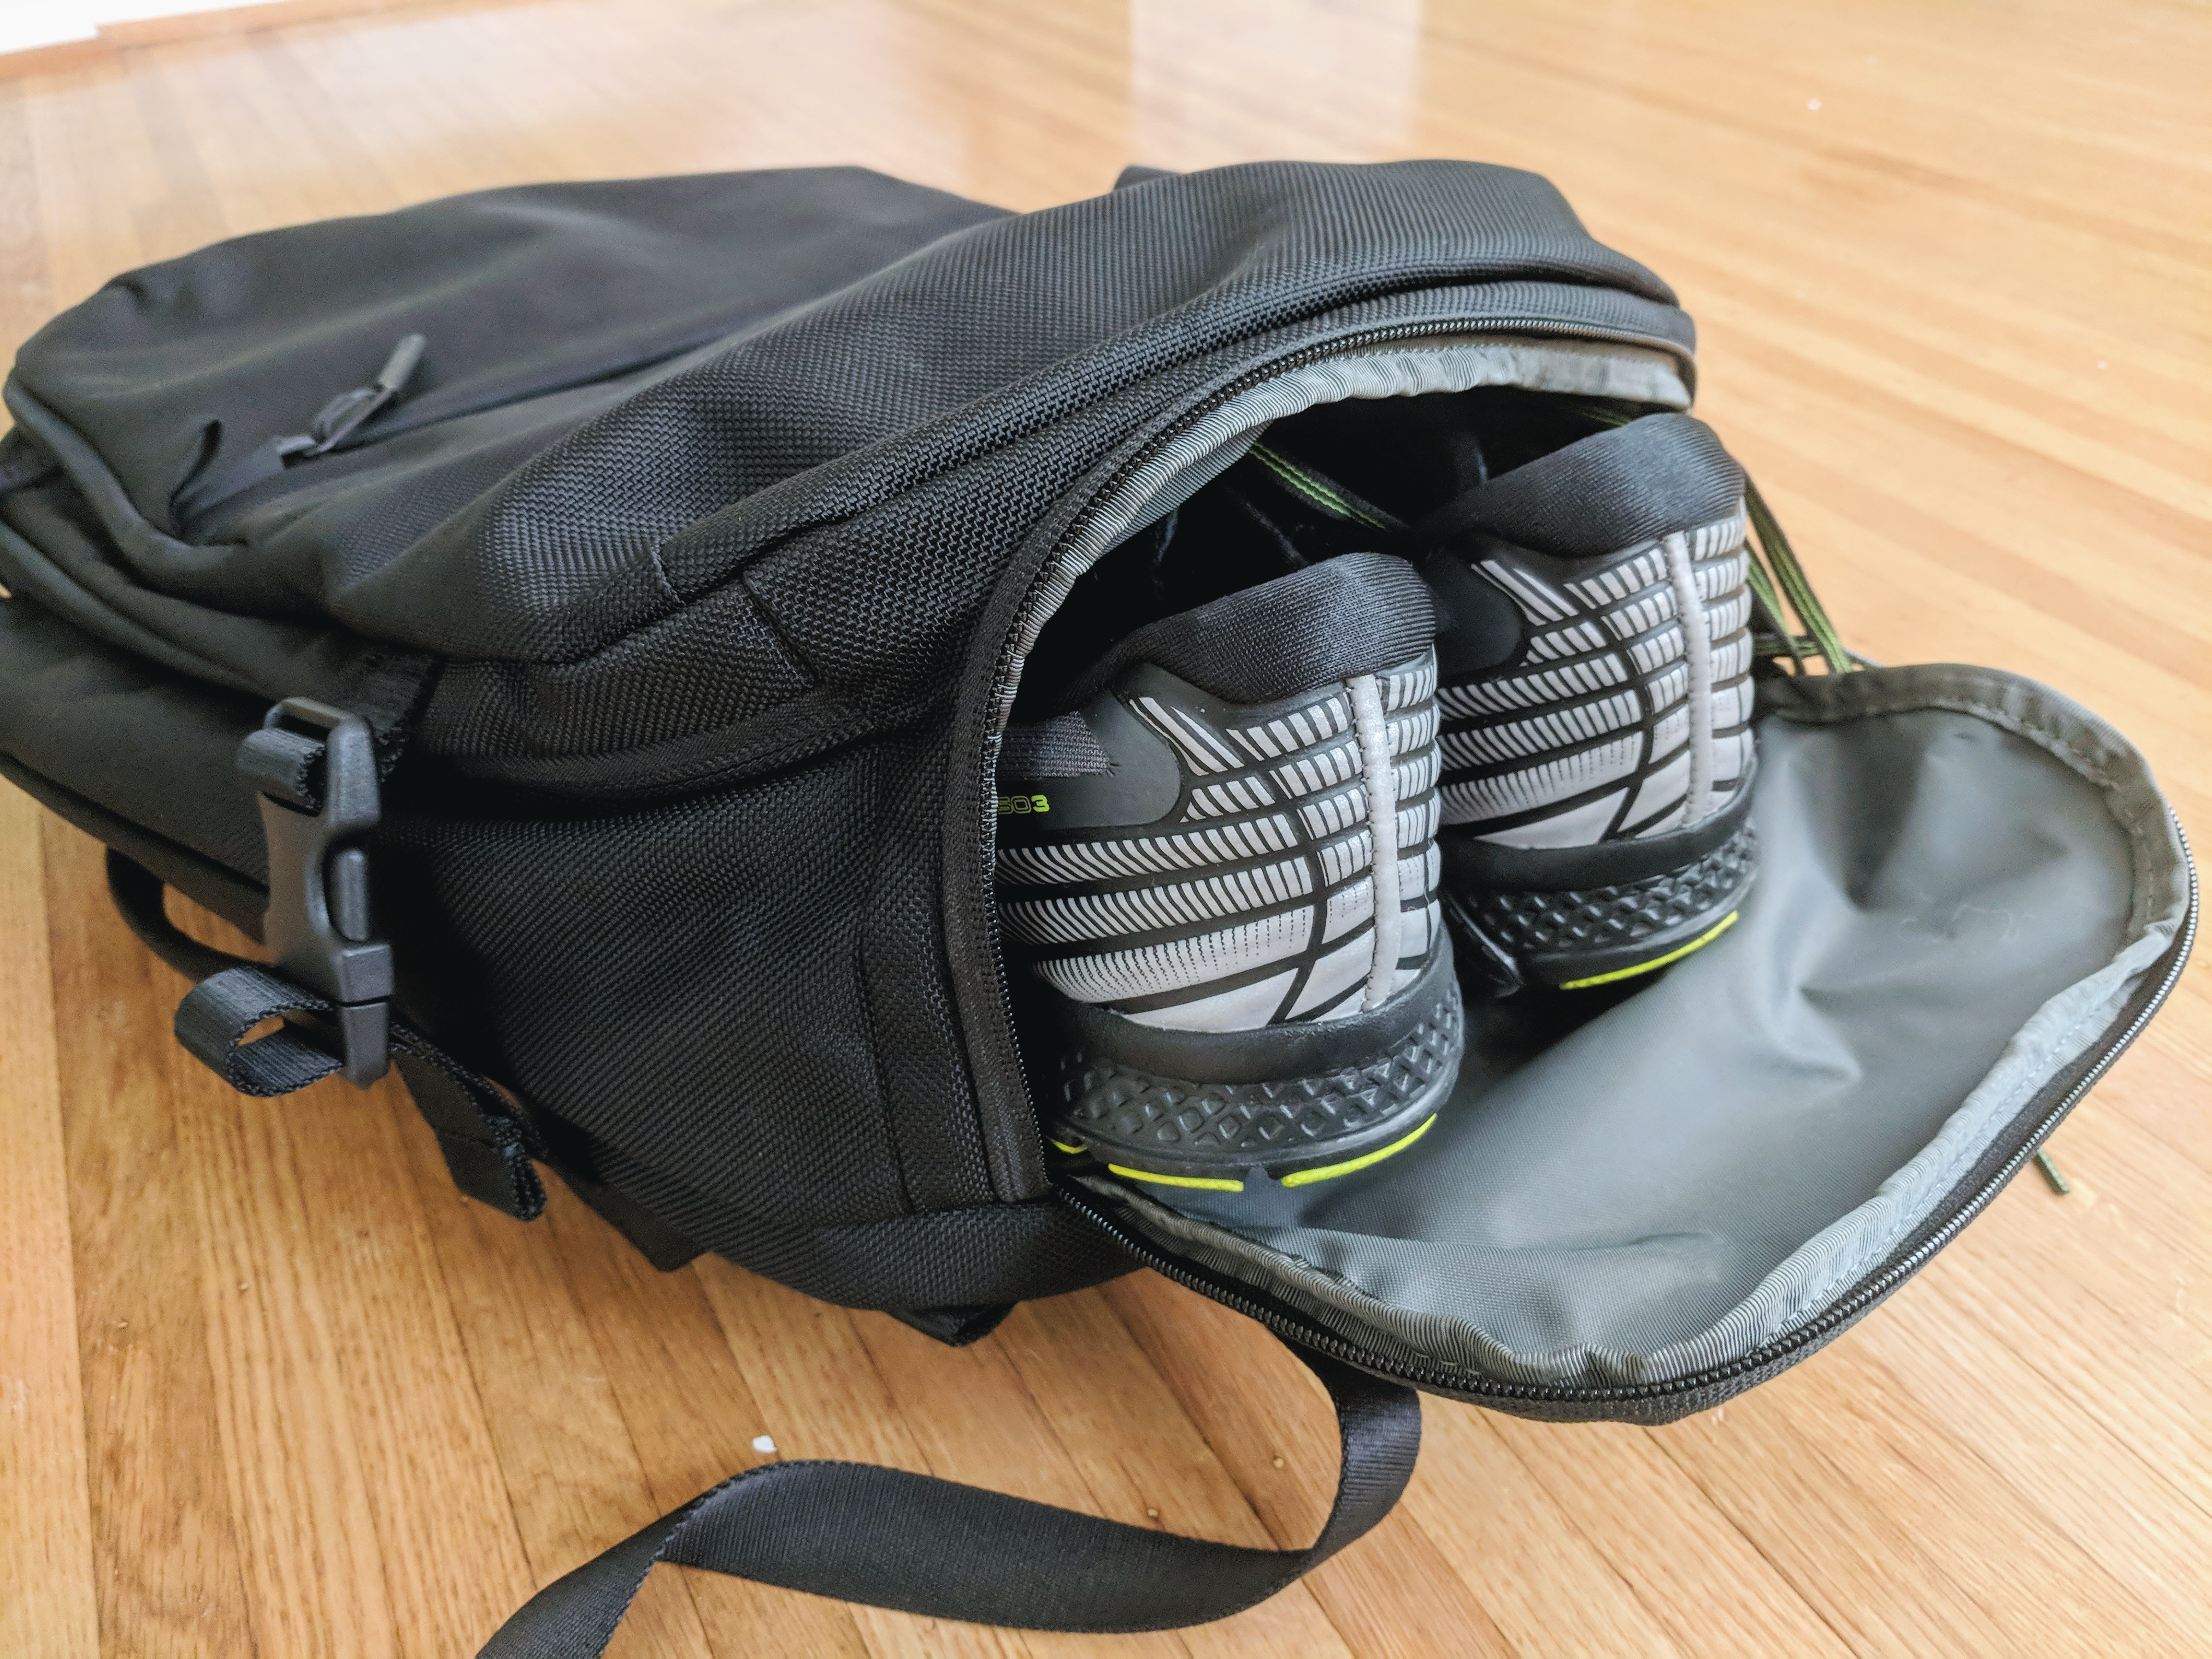 Aer travel pack 2 backpack review shoe compartment open